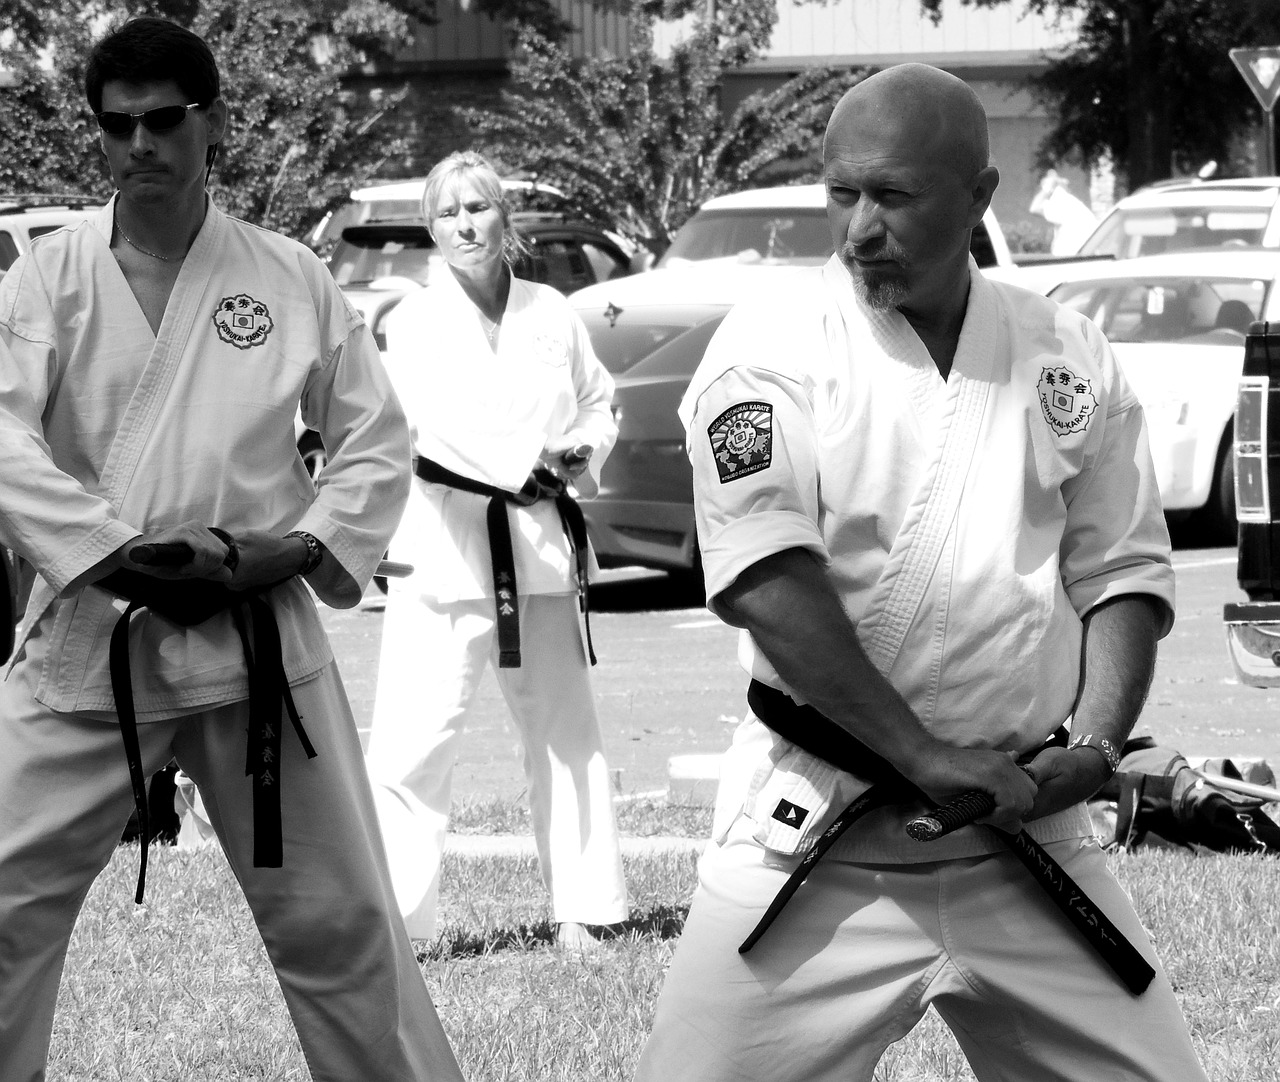 Karate,sword,martial arts,training,traditional - free photo from